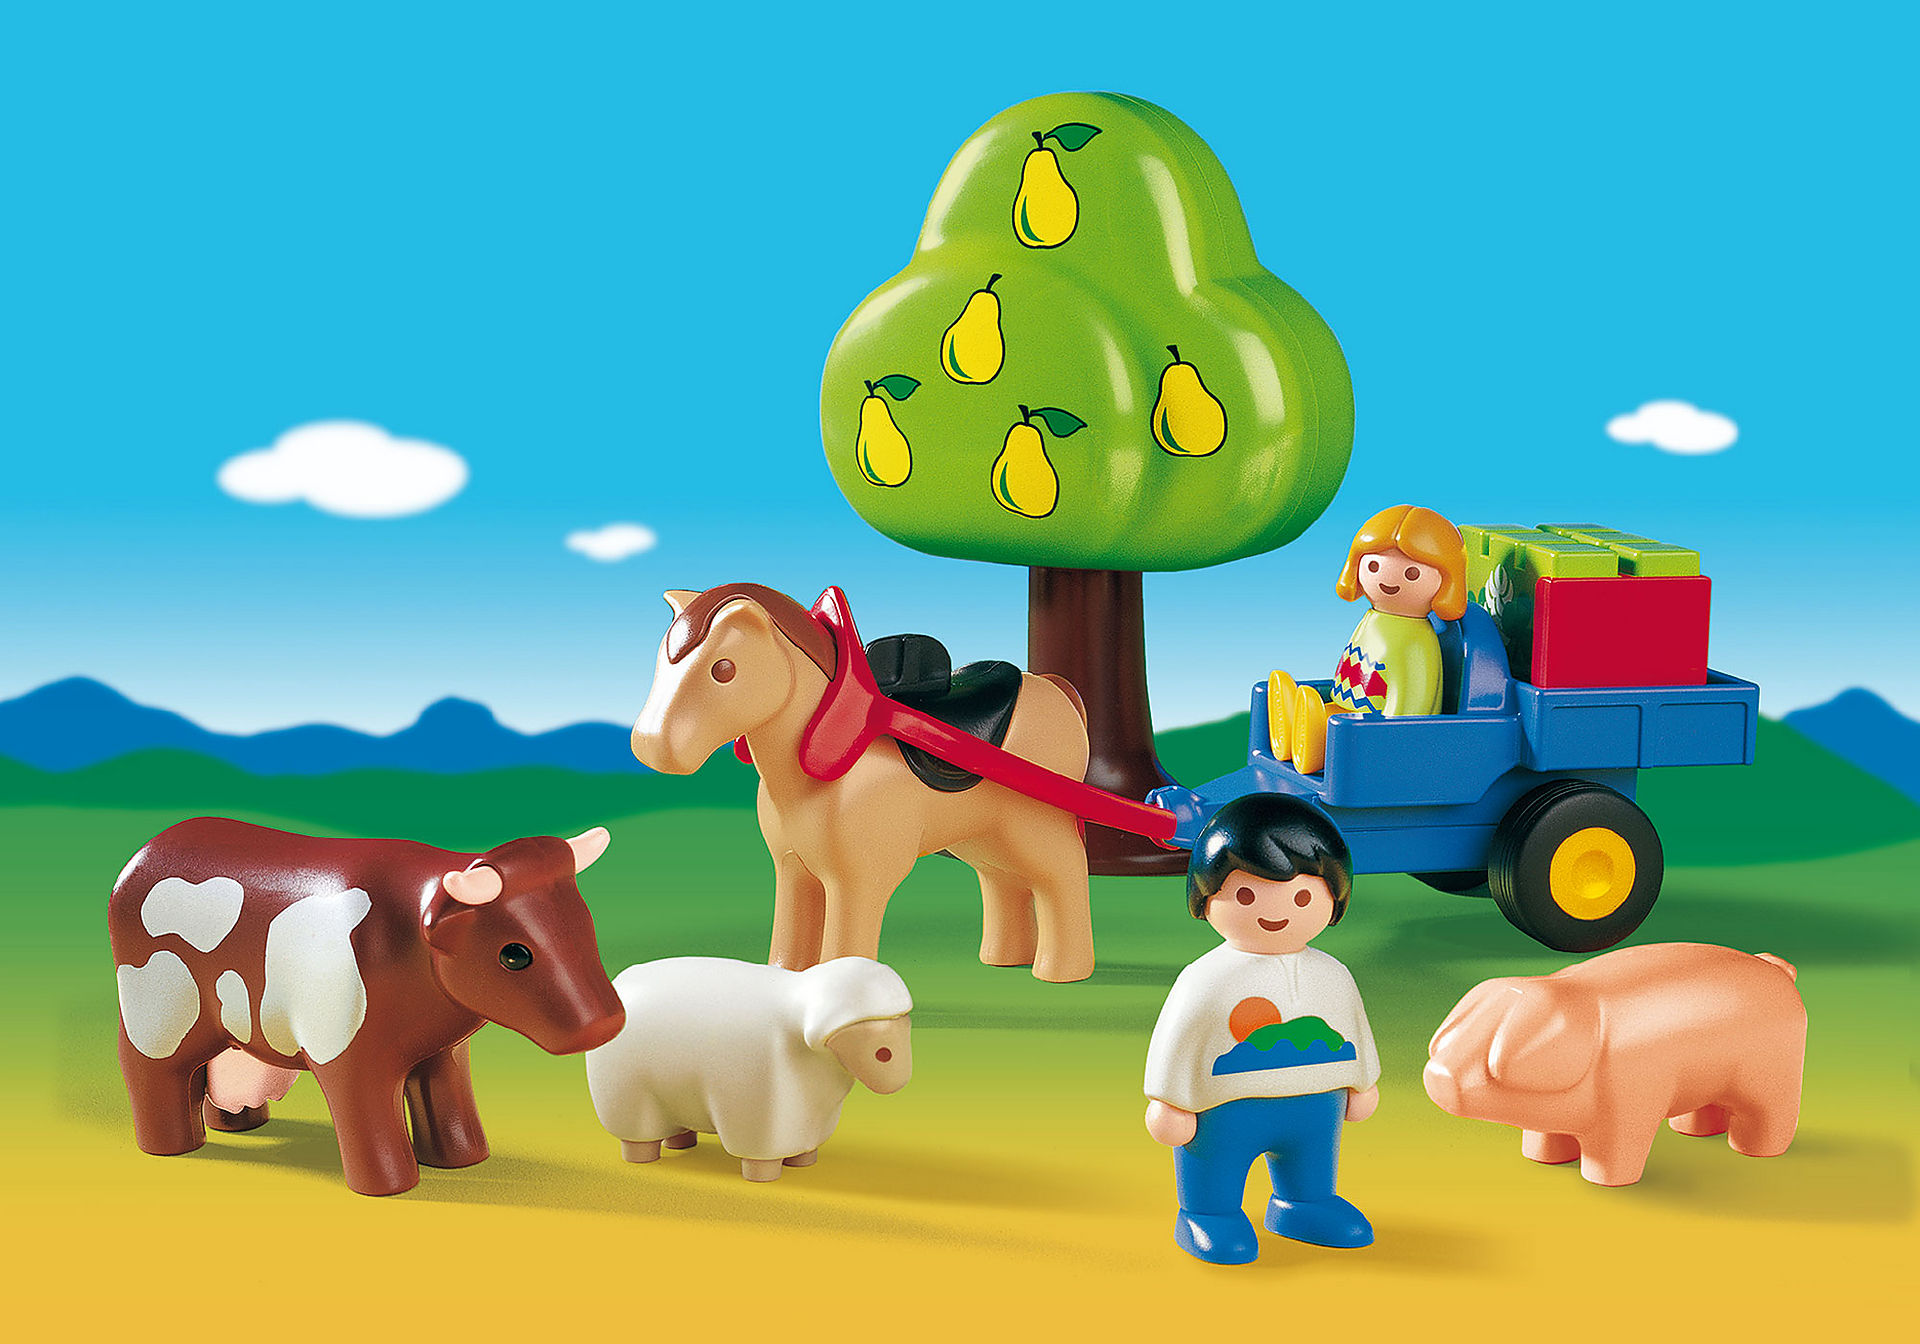 http://media.playmobil.com/i/playmobil/6620_product_detail/Sommerweide